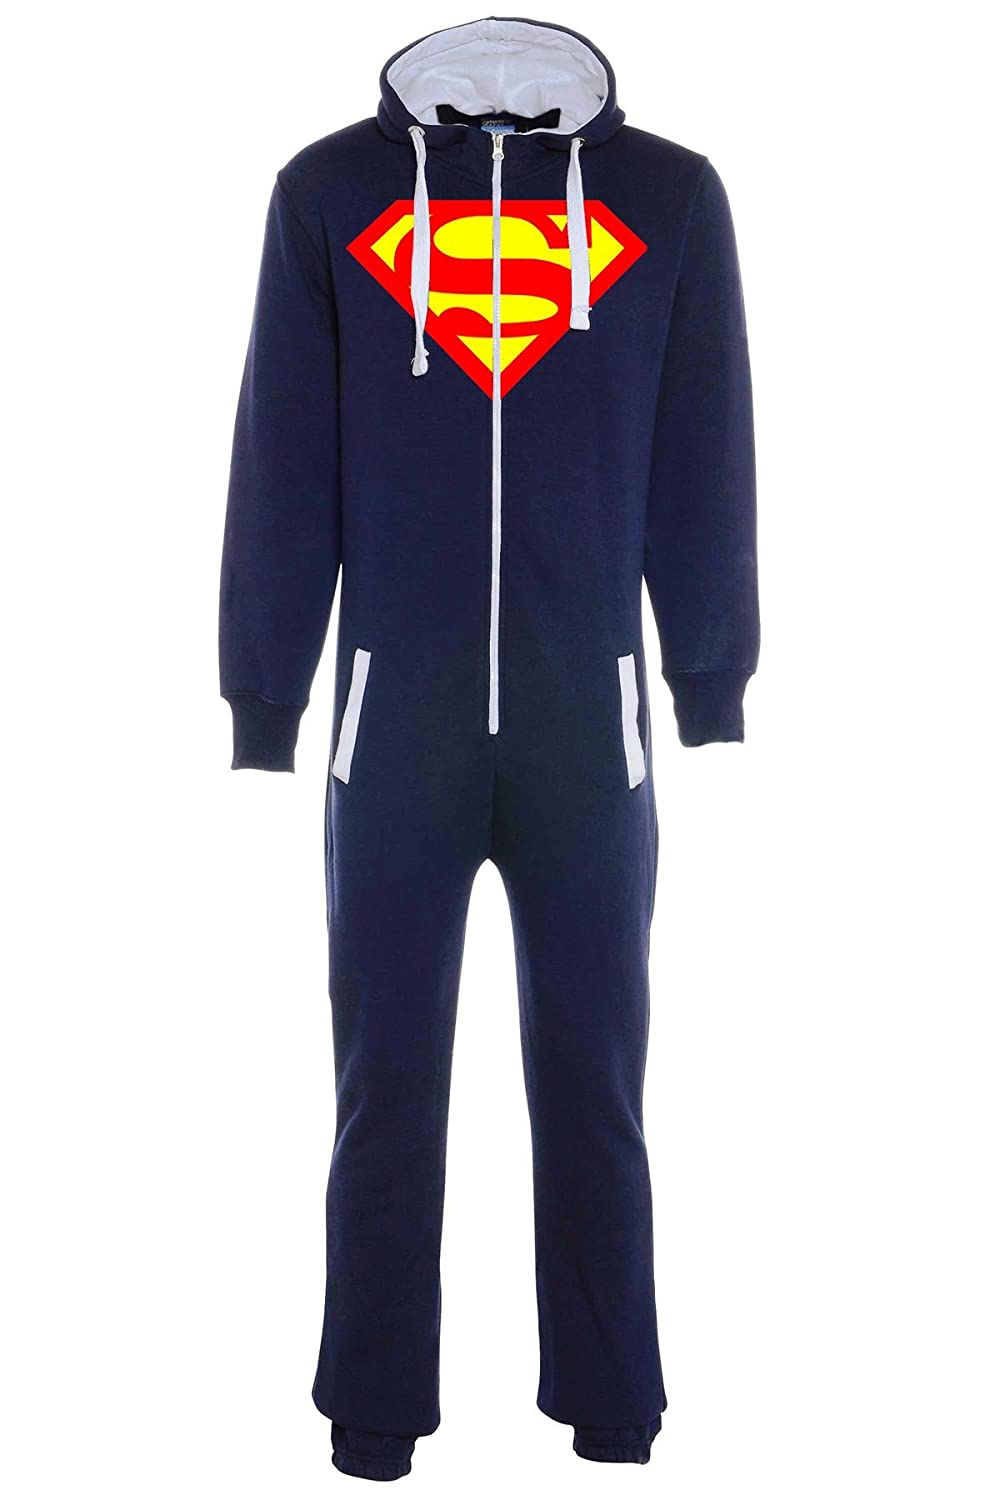 aejays Unisex Superman Printed Onsie Color Navy Blue Size L PAK MAN LTD